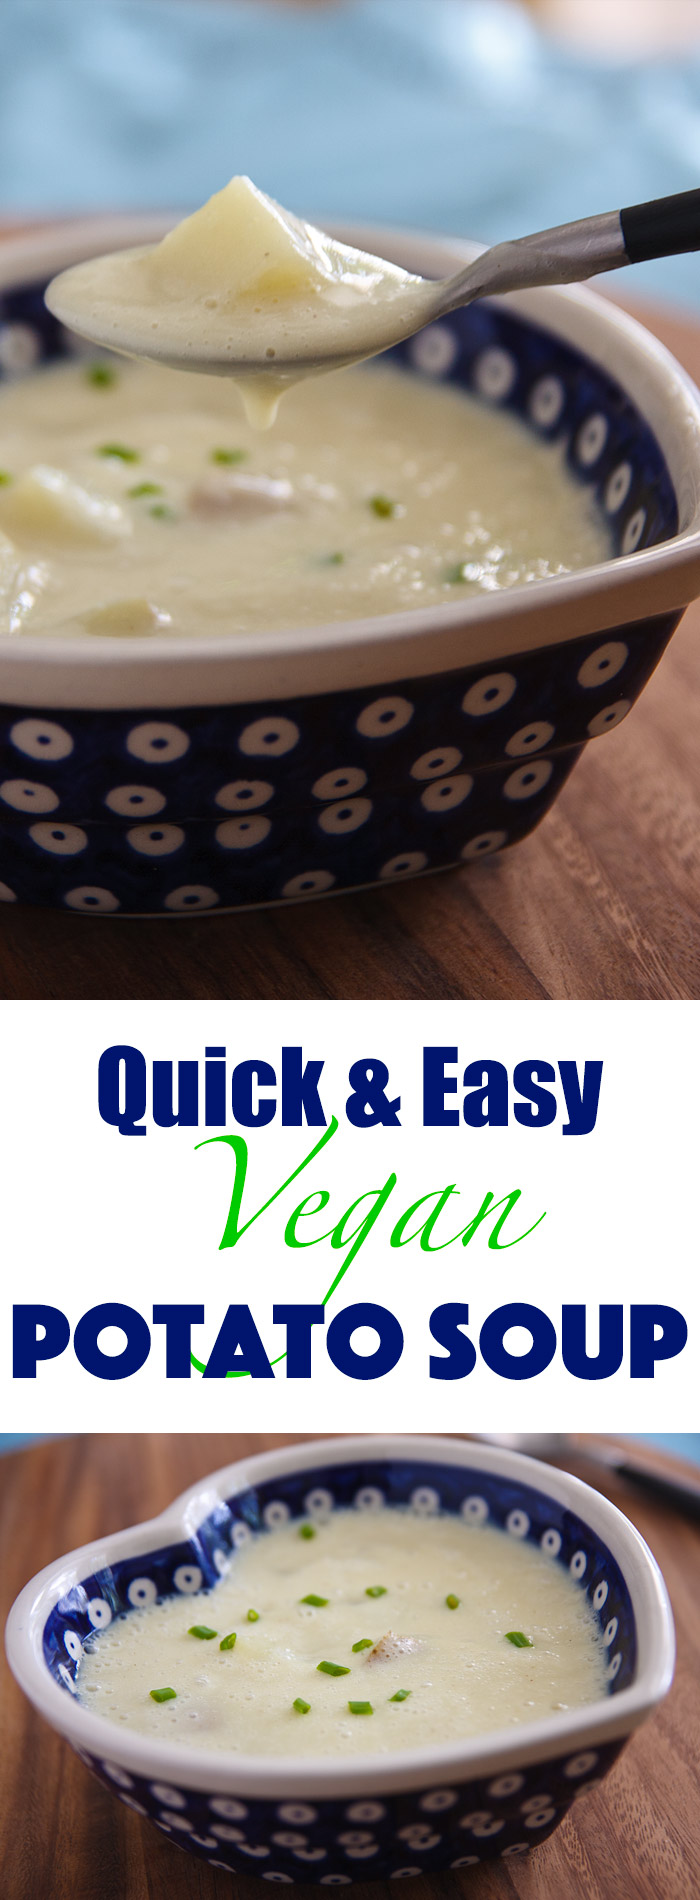 Quick and Easy Potato Soup: Rich and creamy, this vegan potato soup has no added fat and can be made in minutes in a blender